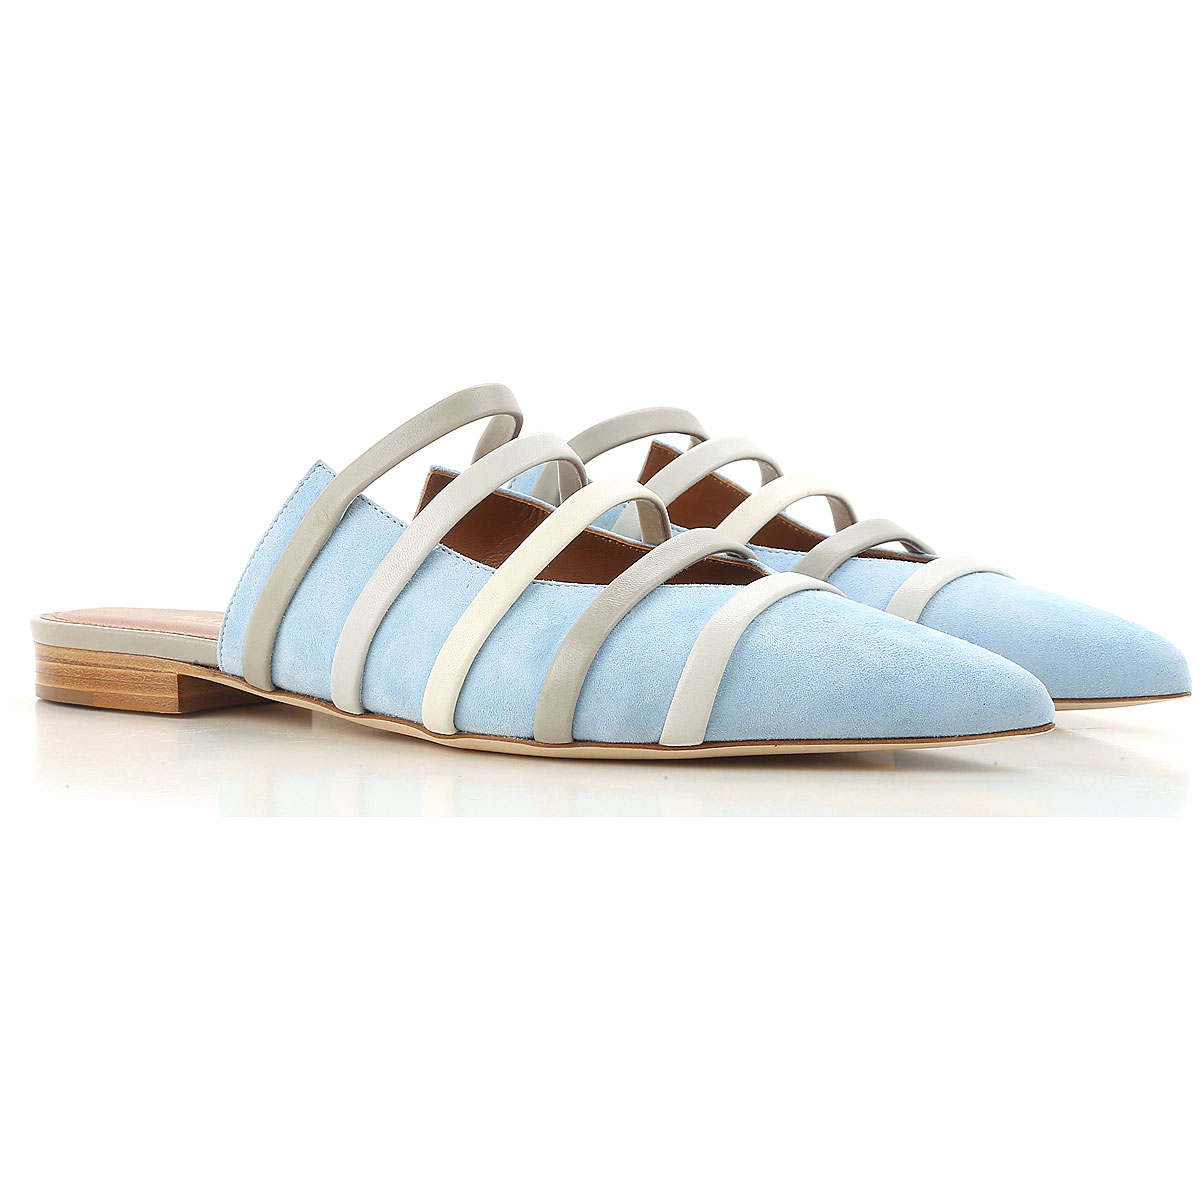 Malone Souliers Ballet Flats Ballerina Shoes for Women in Outlet Powder Blue USA - GOOFASH